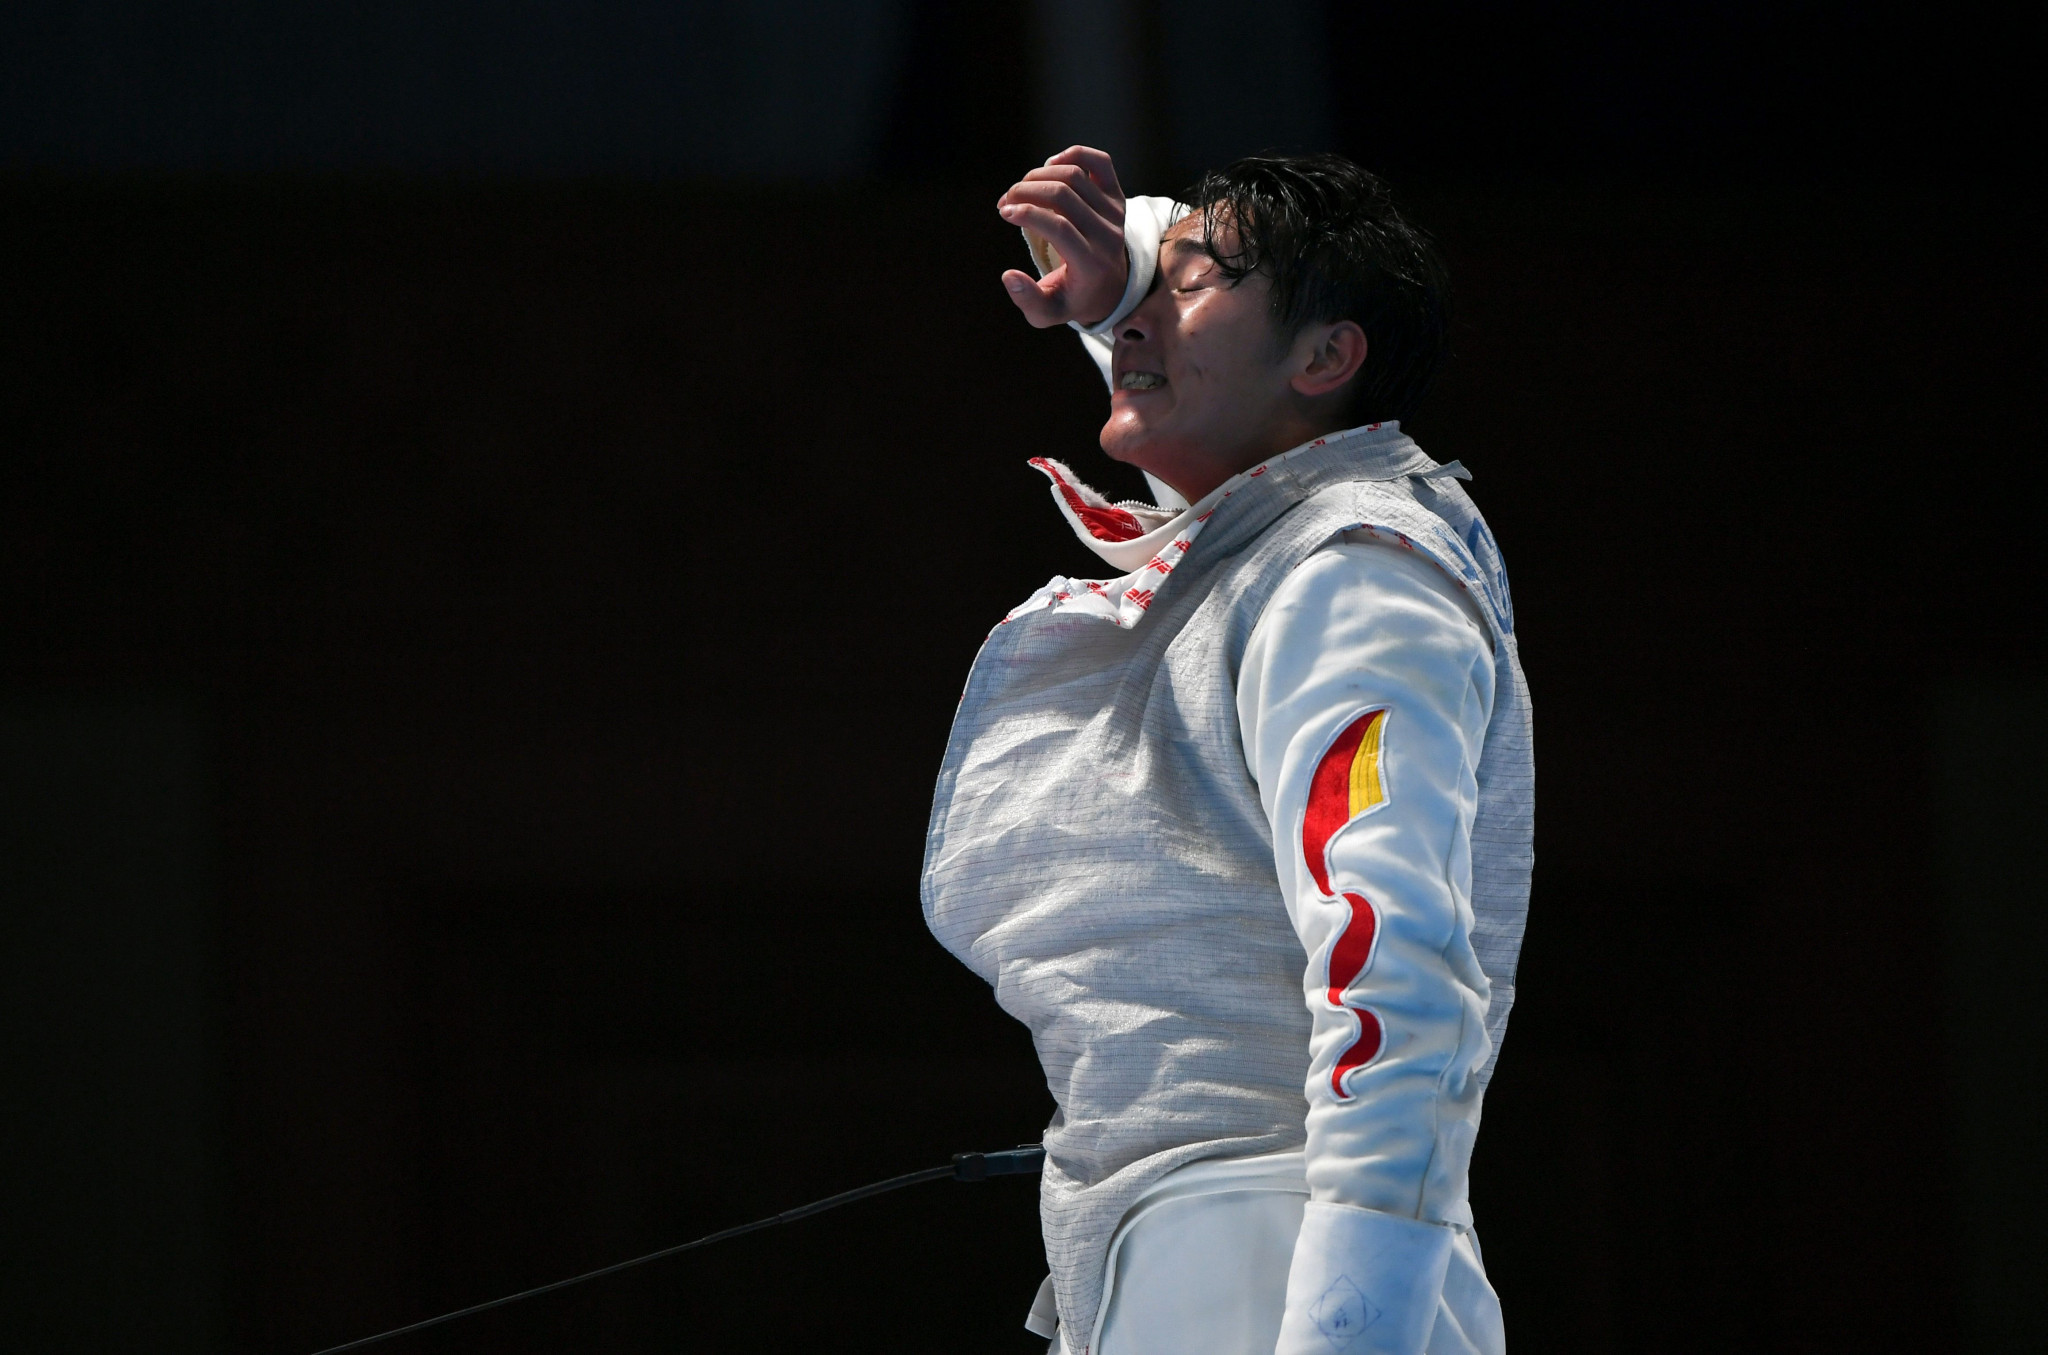 Asian Games champion Huang among 12 fencers to qualify for Tokyo 2020 at zonal tournaments